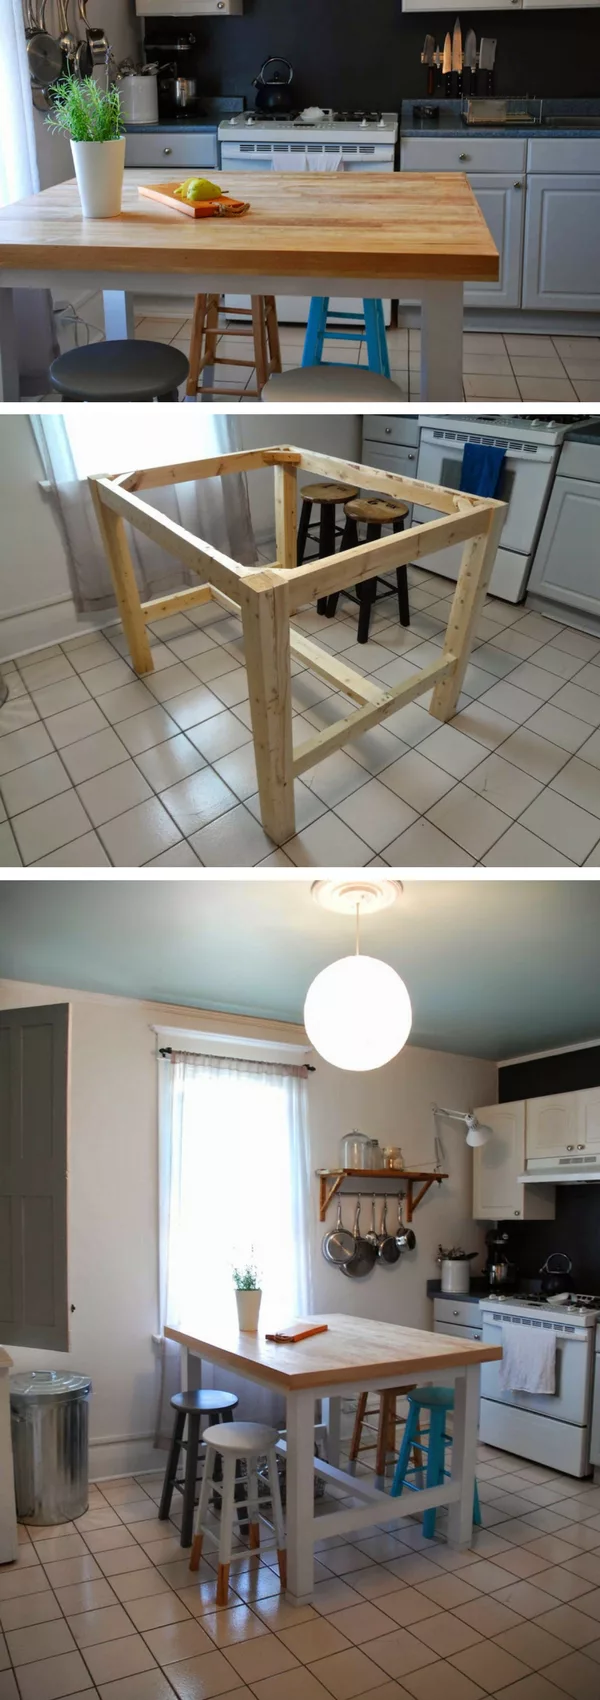 diy kitchen island 25 easy to make and affordable ideas diy kitchen island diy kitchen on kitchen island ideas diy id=14230